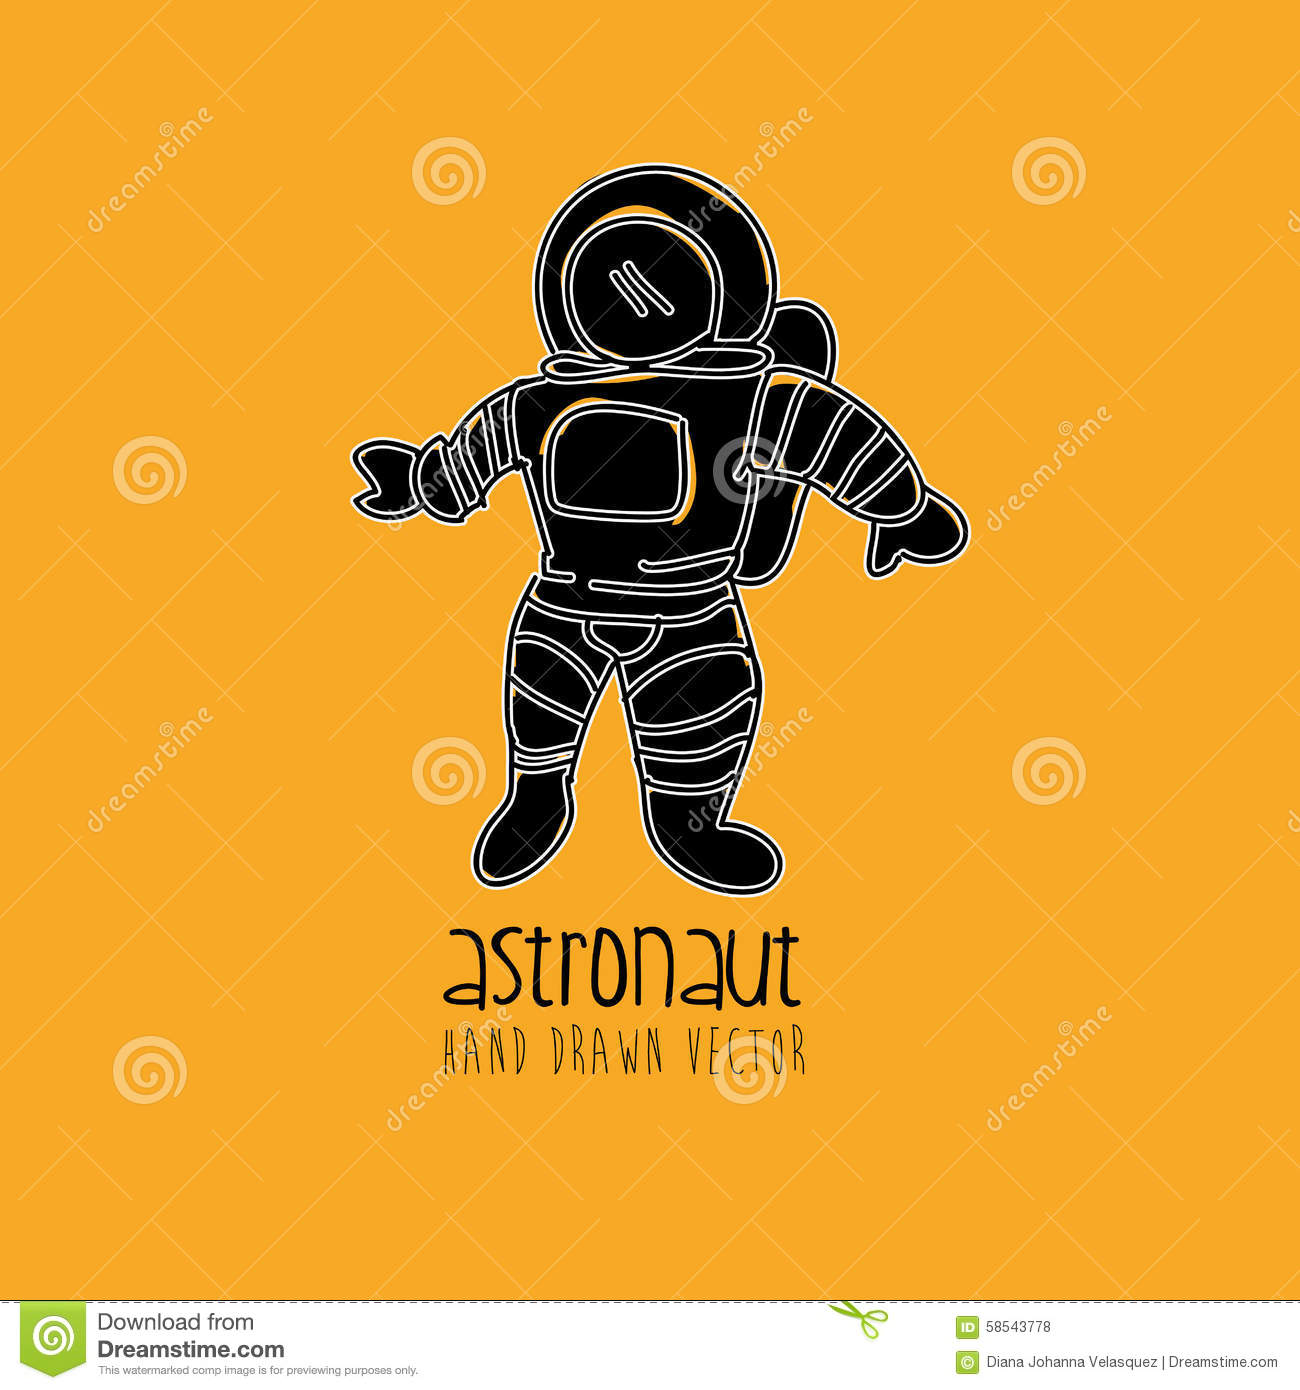 astronaut design - photo #44